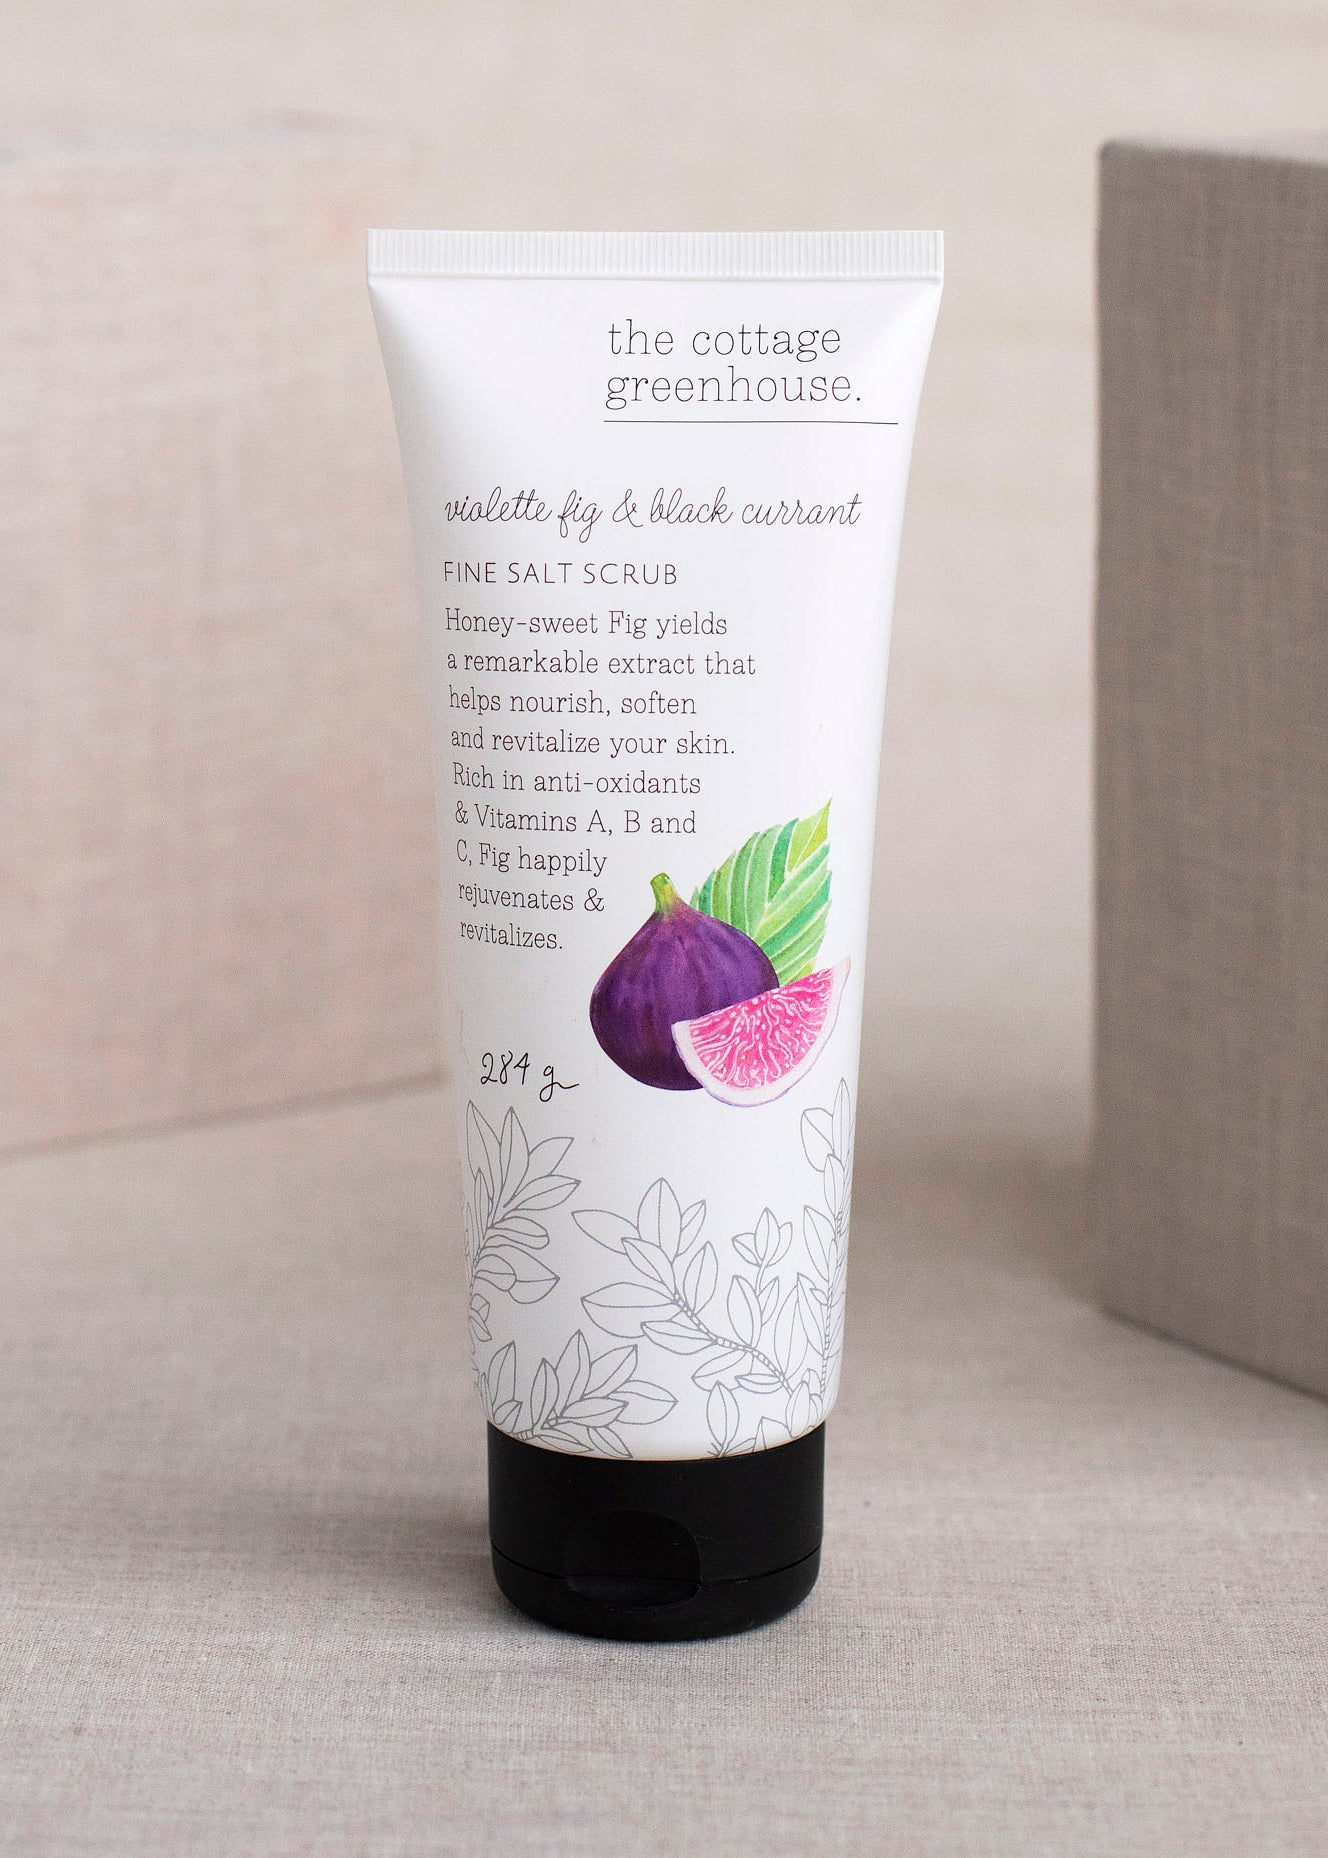 Violette Fig & Black Currant Salt Scrub